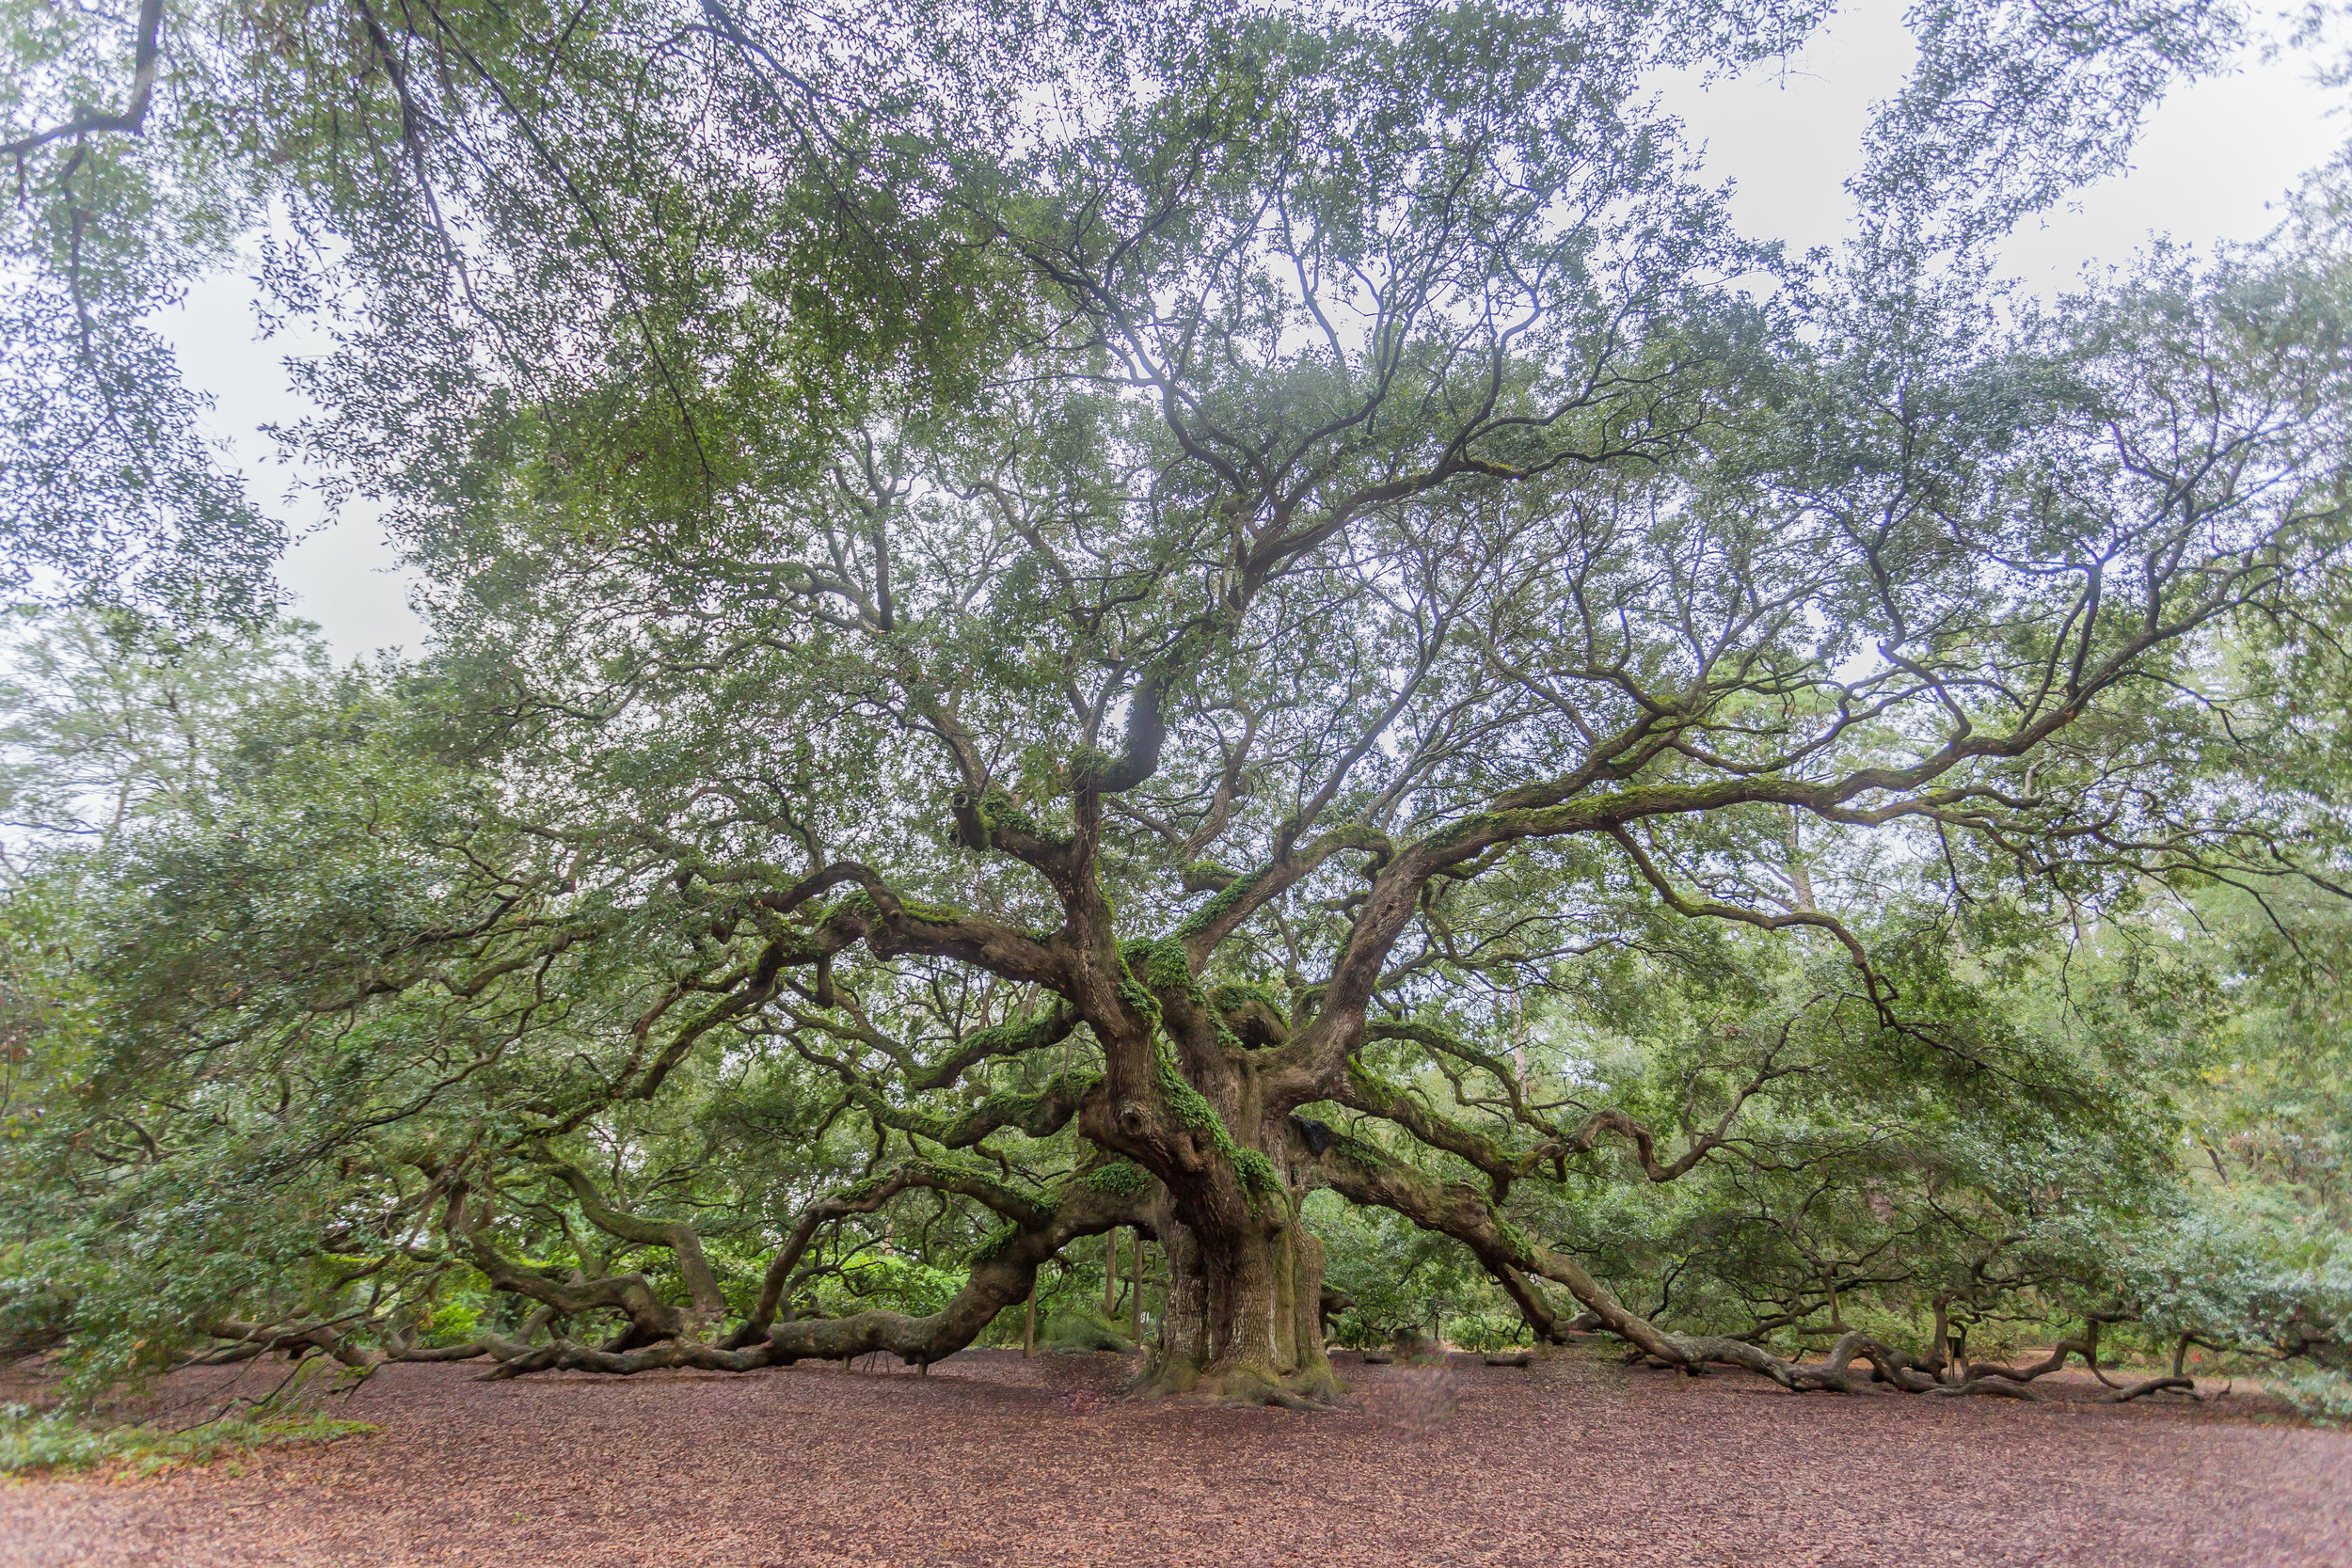 Voila! Here's the gorgeous shot Dan snagged. It's a pretty incredible site. It is said that this tree is anywhere between 400-500 years old.